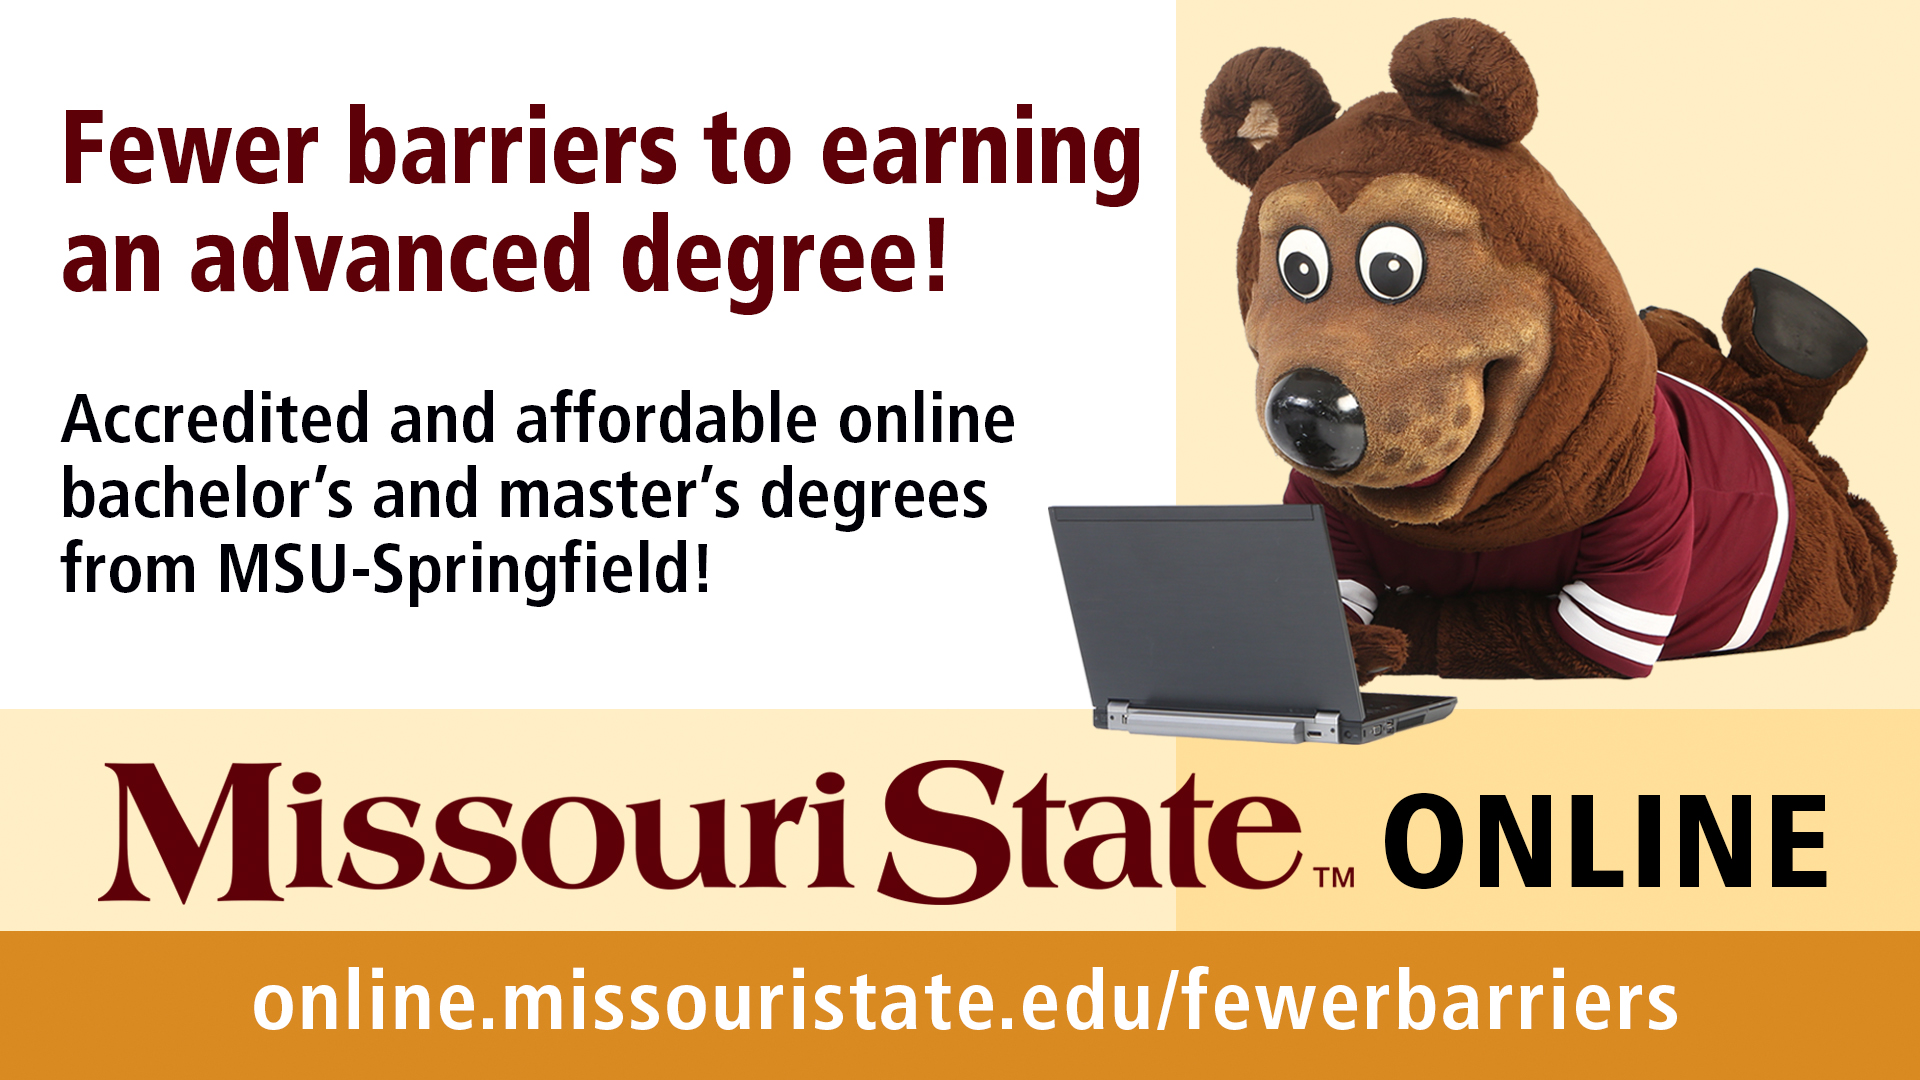 Fewer barriers campaign for Missouri State Online extends to Gohn Hall in West Plains